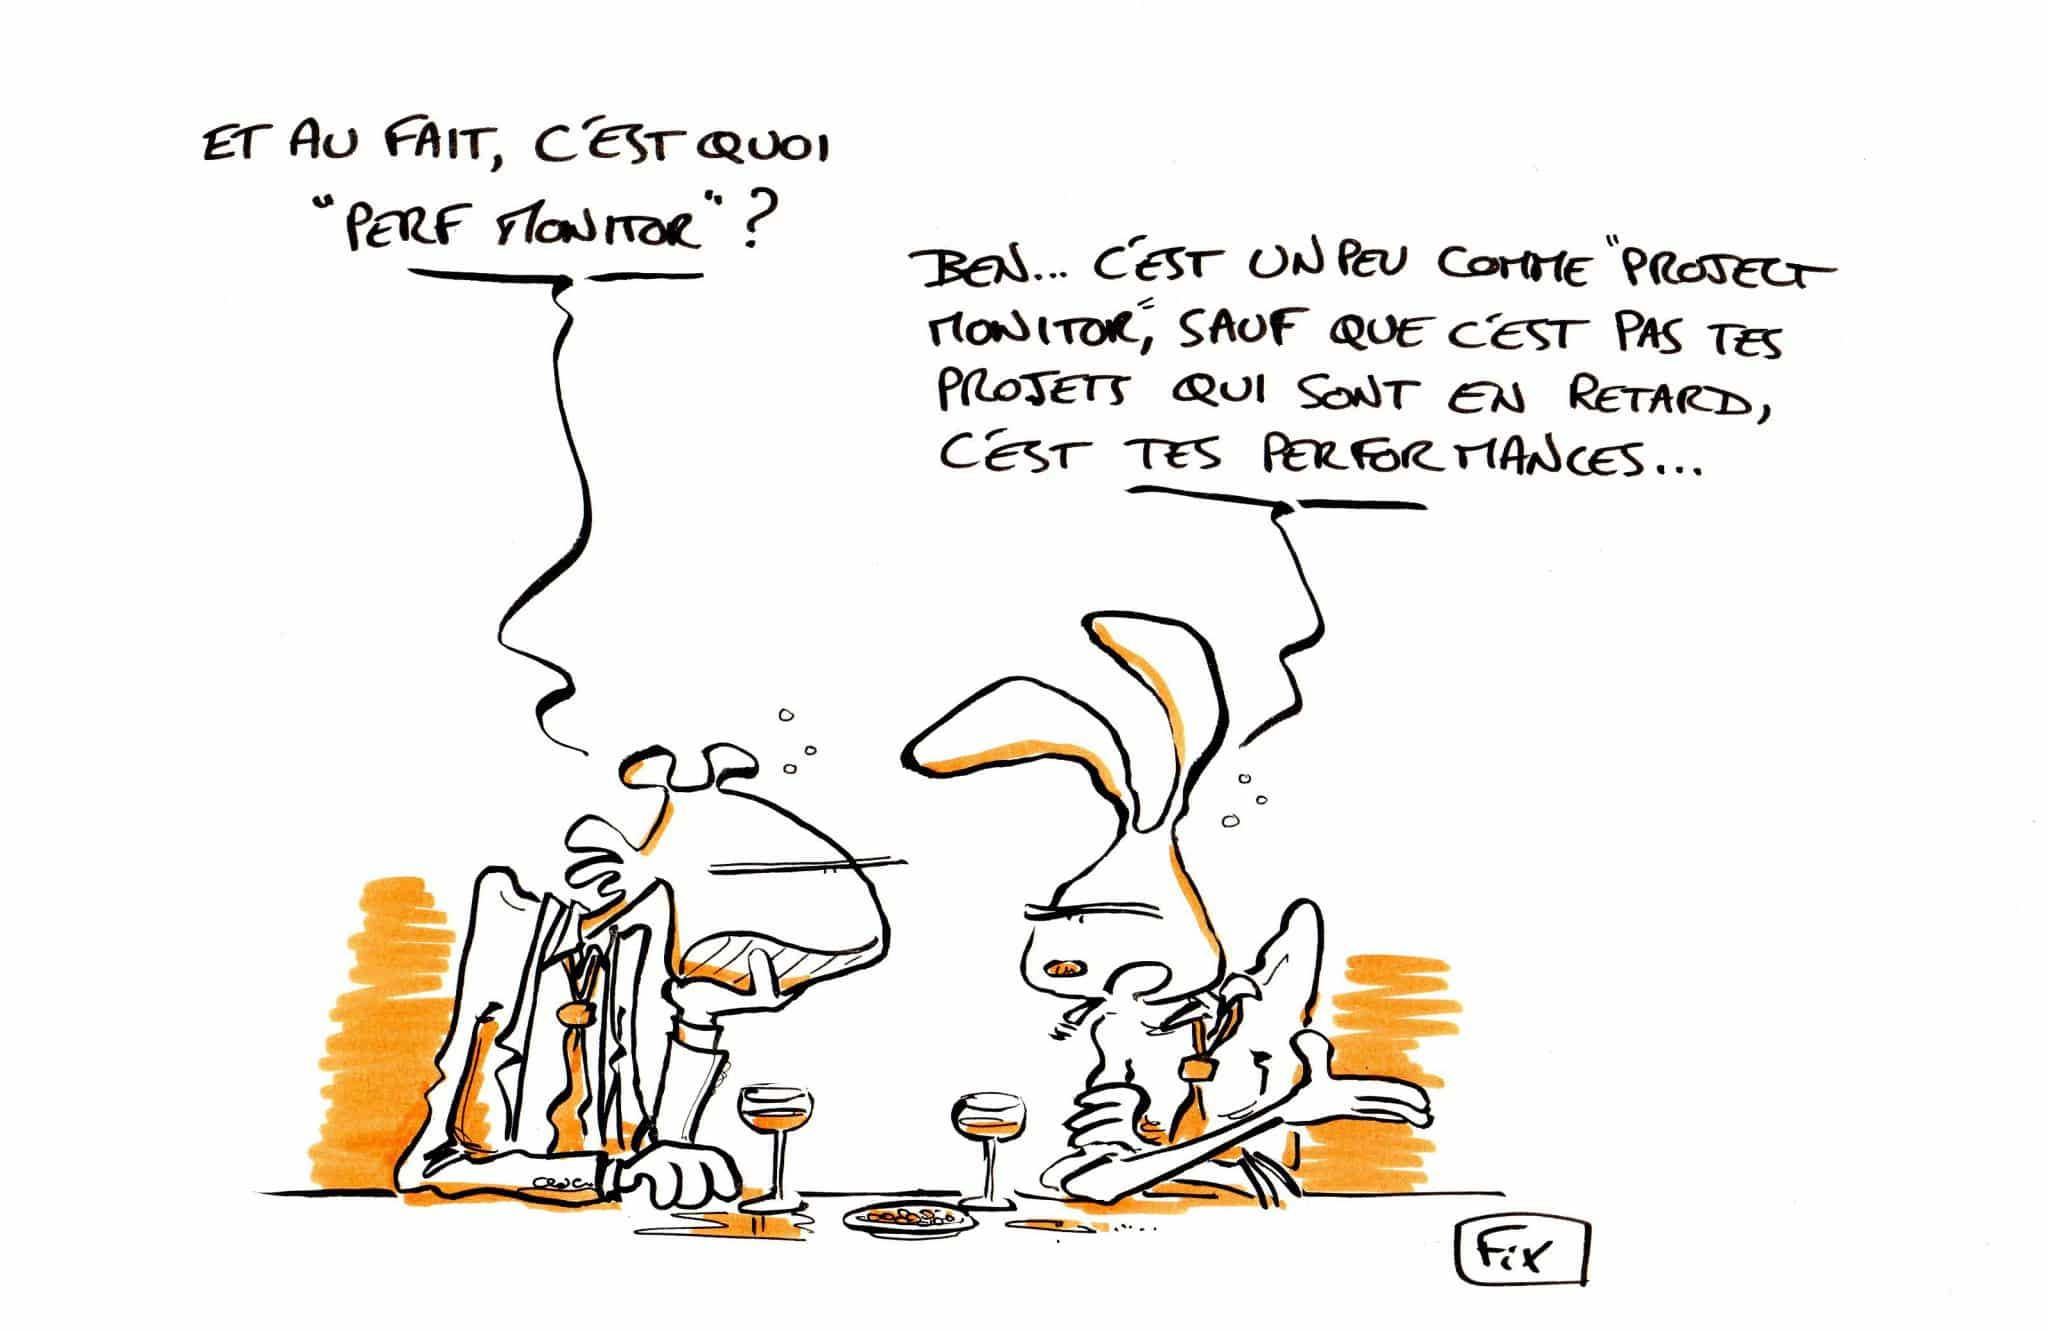 dessin fix - caricature - perf monitor - retards - délais - project monitor